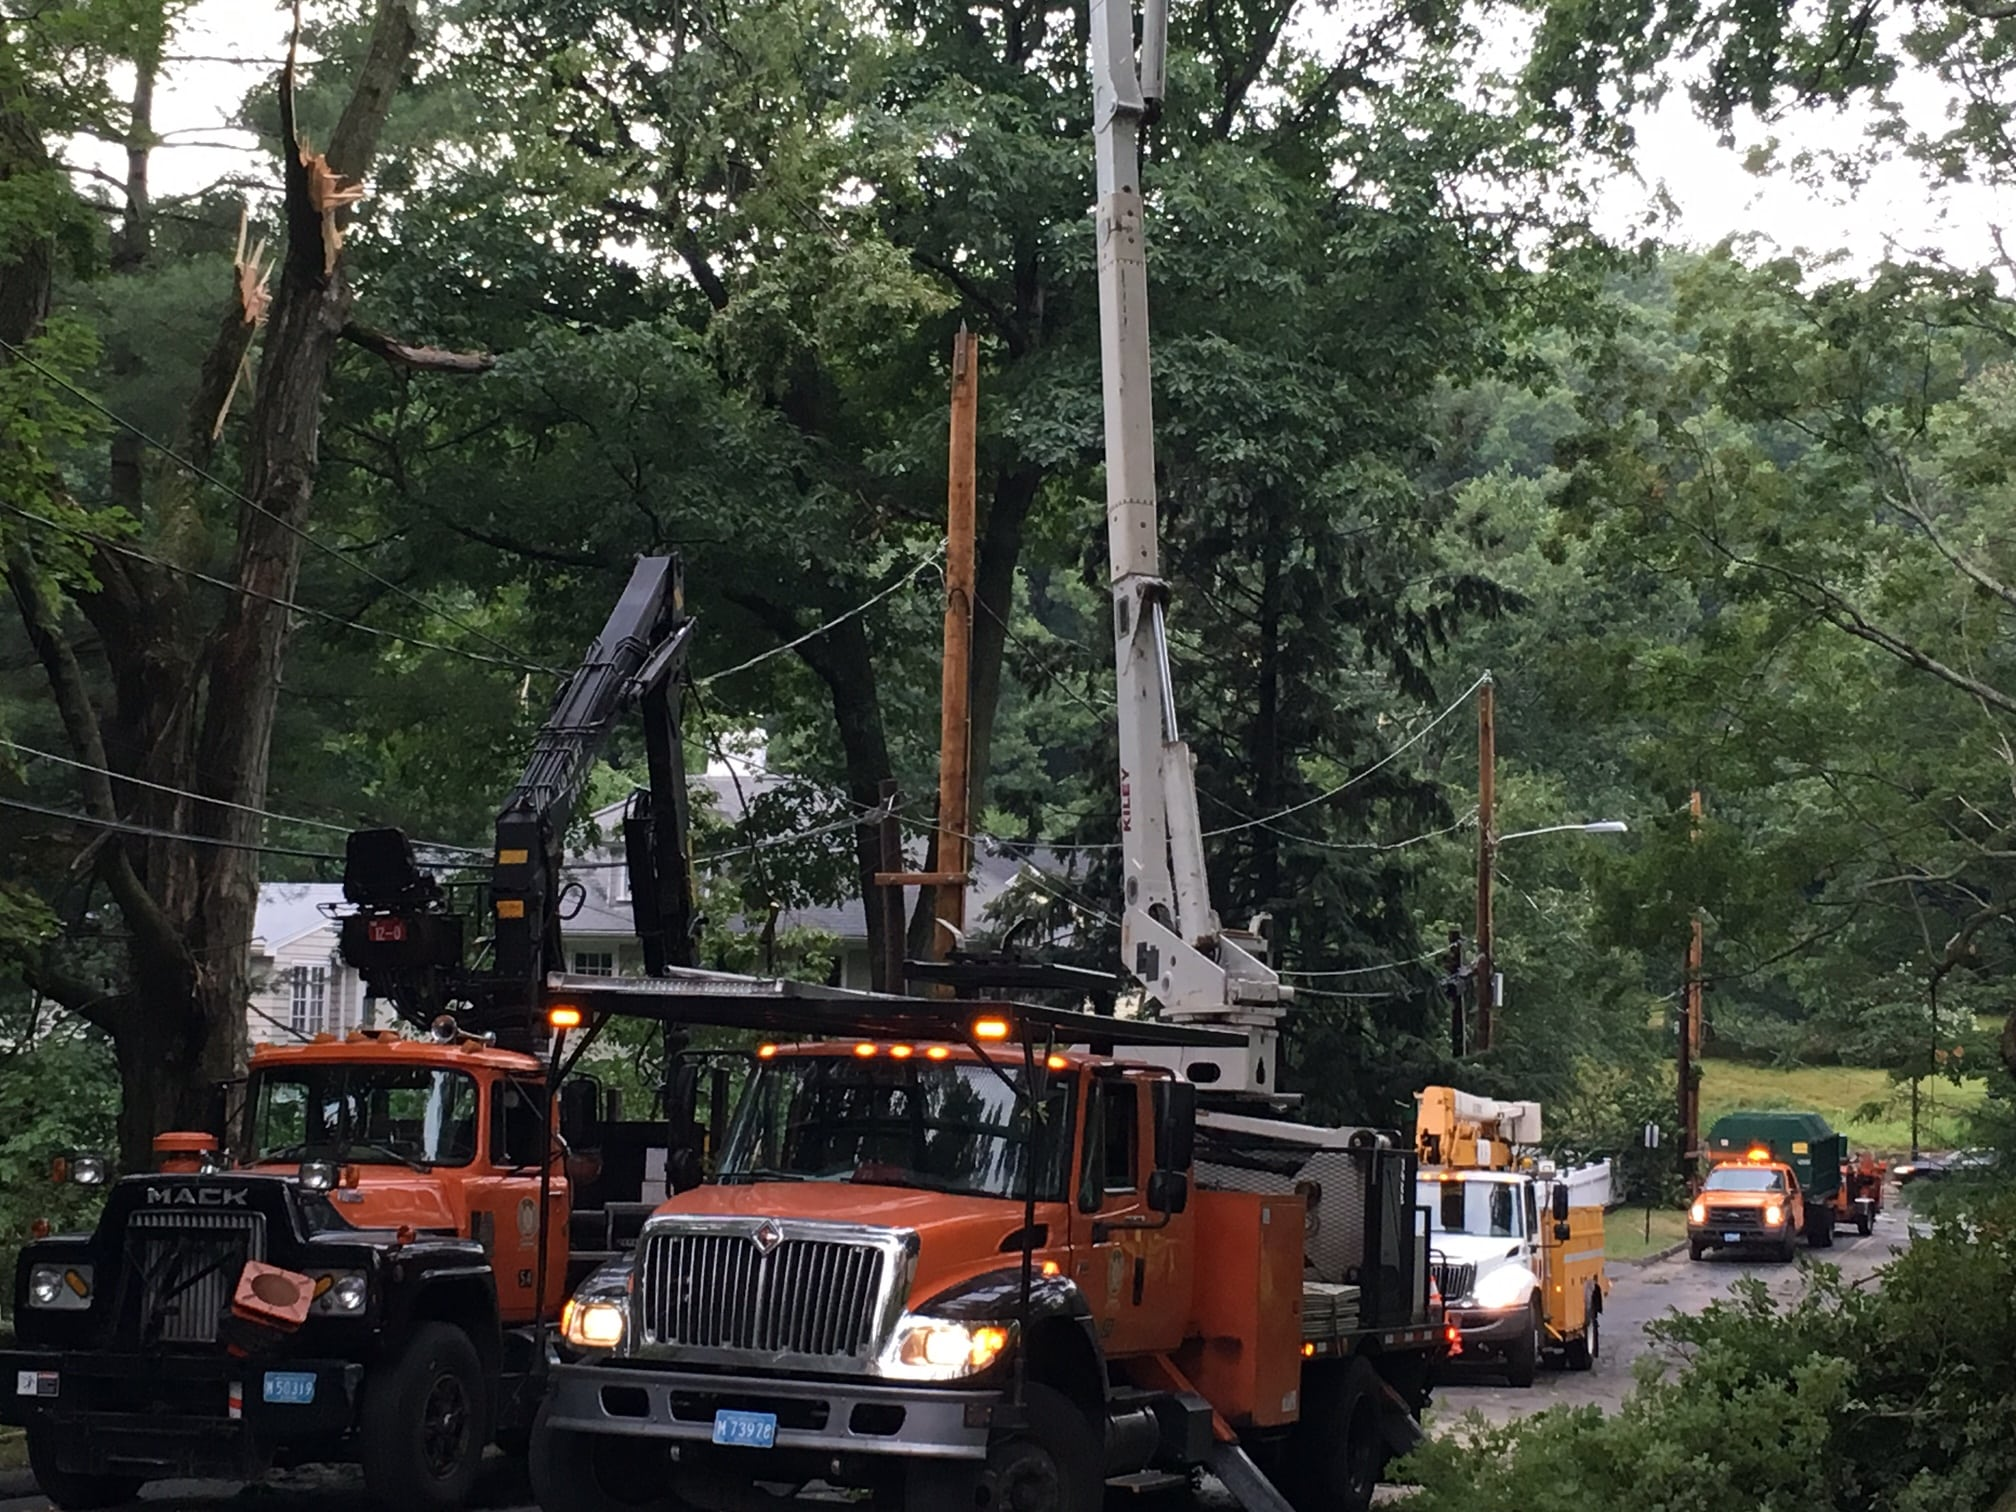 First responders were out fast, approaching the job in what looked like a triage fashion: first they cleared the roads of all tree limbs. Next, MLP crews got in there and worked restoring power. Throughout the area, the sound of chainsaws and the smell of pine permeated the air.